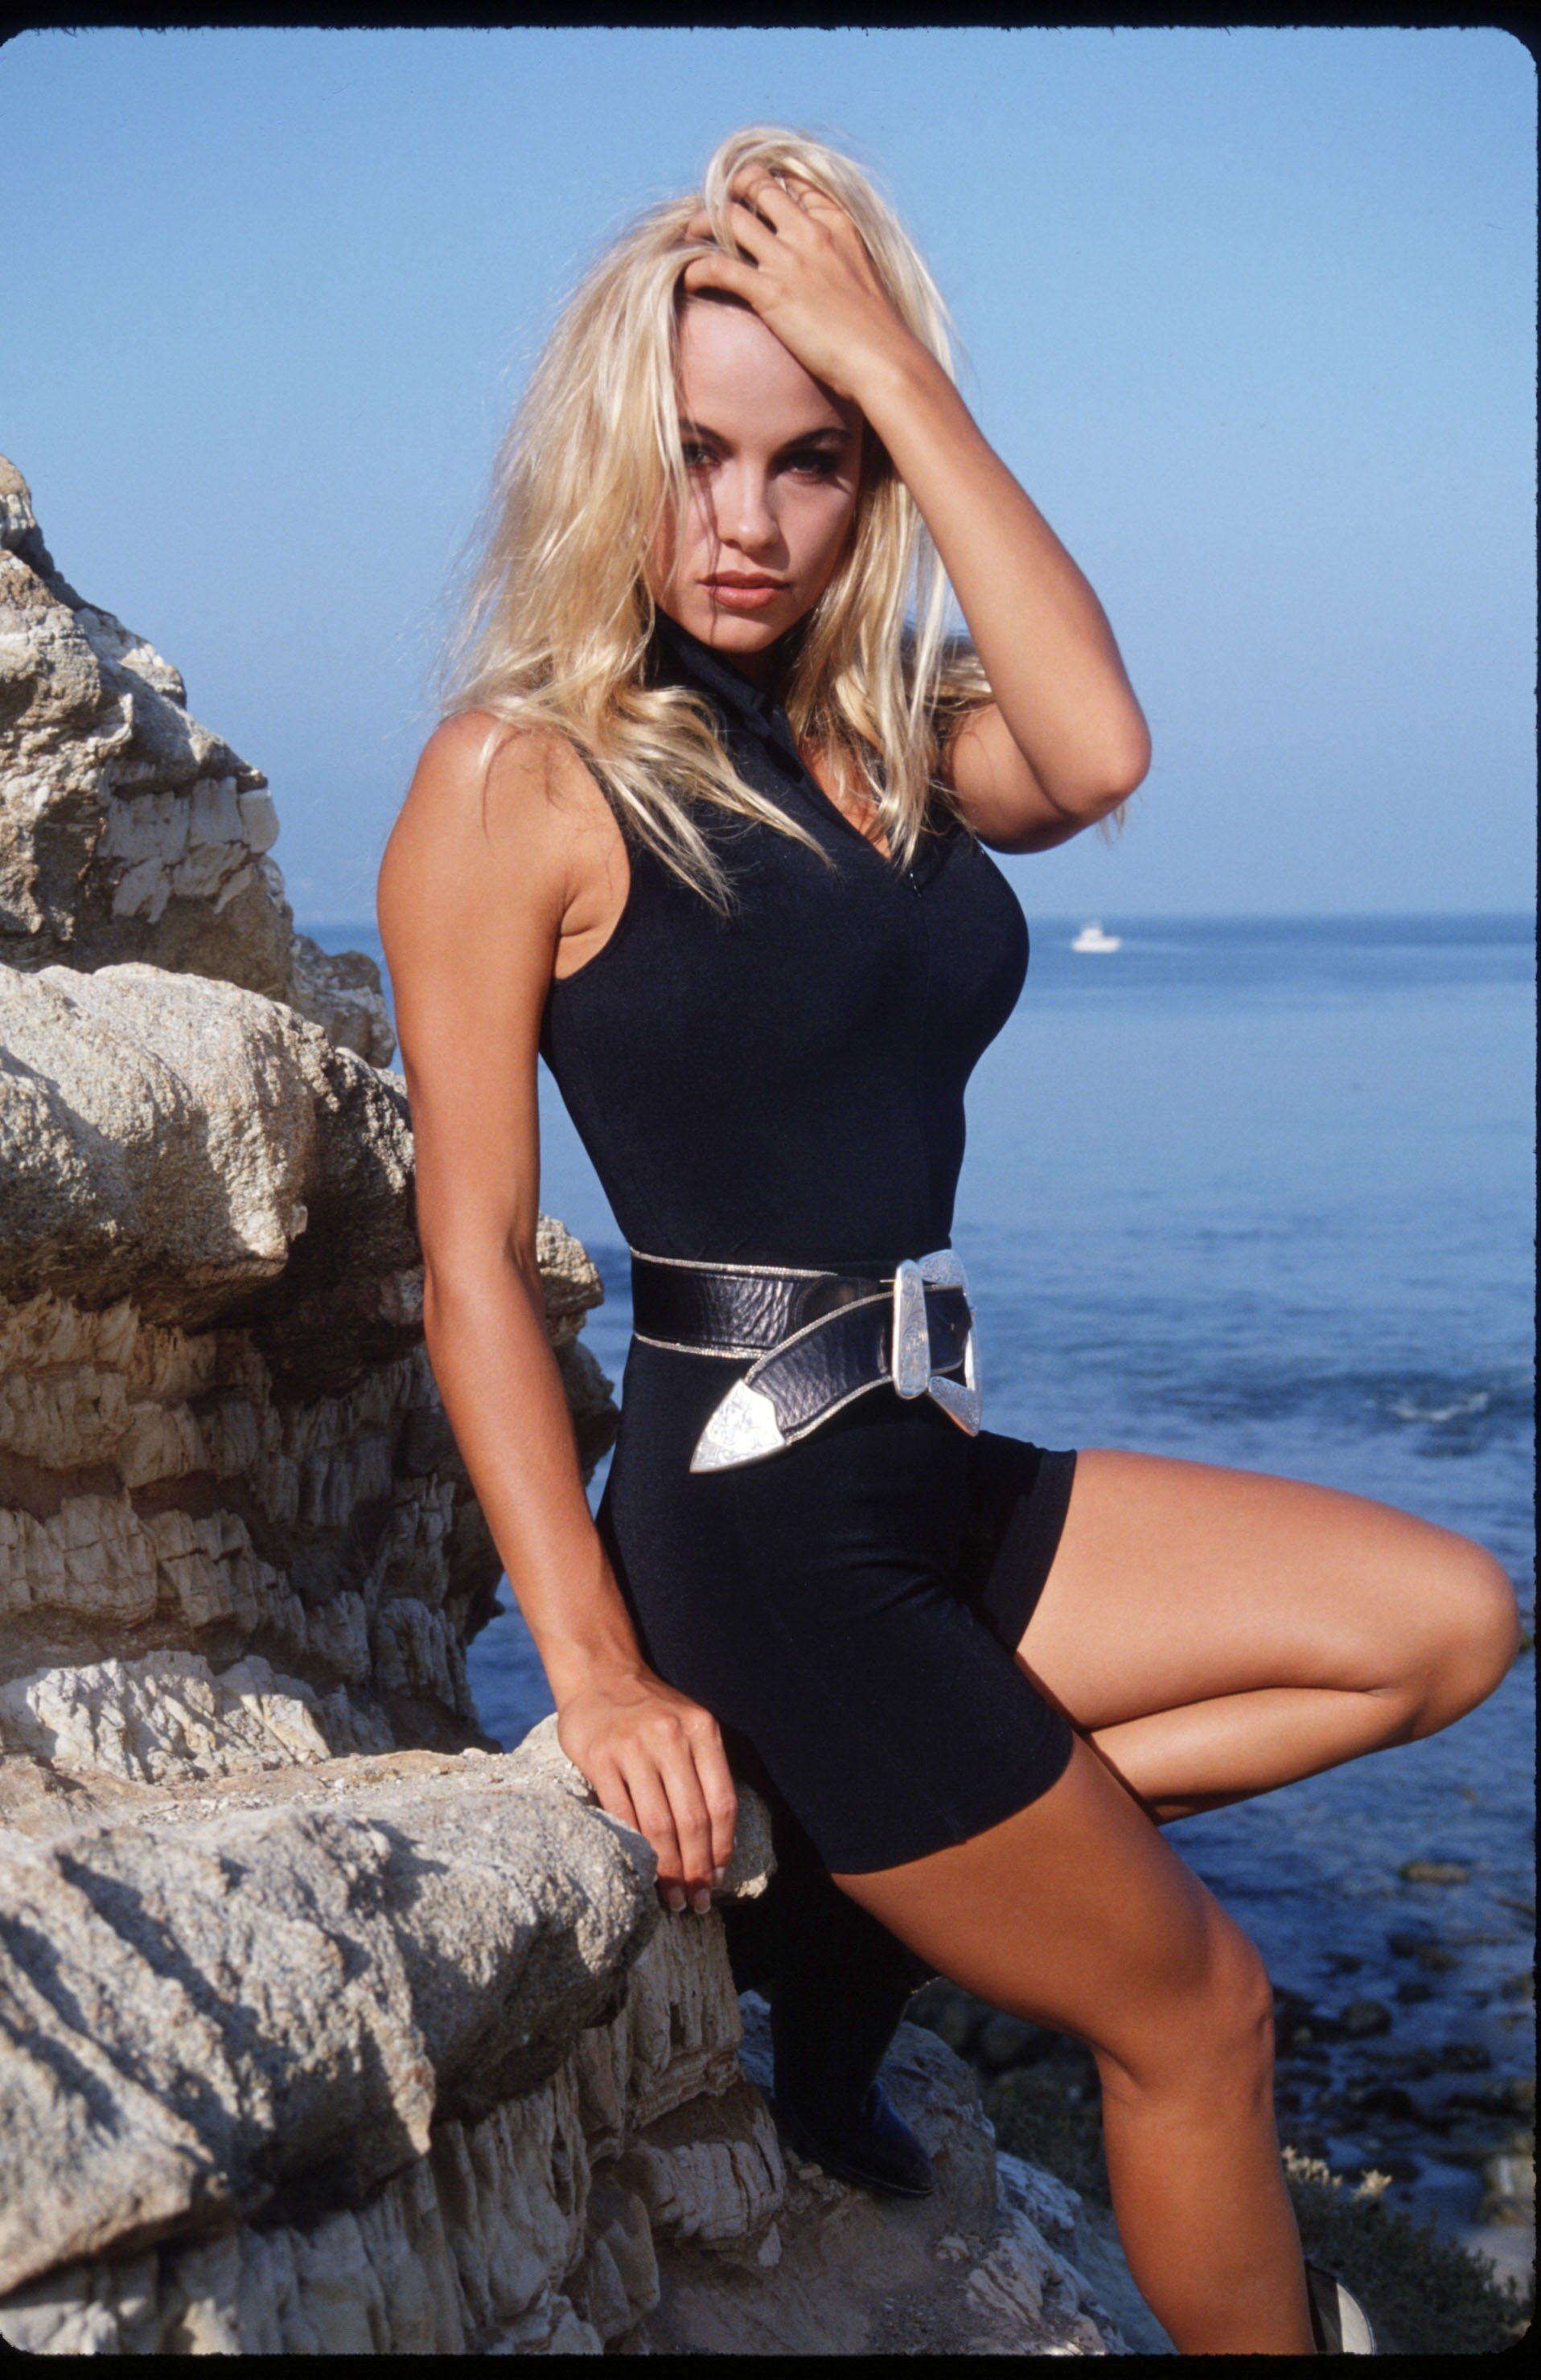 Pamela Anderson poses August 25, 1992 on Malibu Beach, CA. | Source: Getty Images